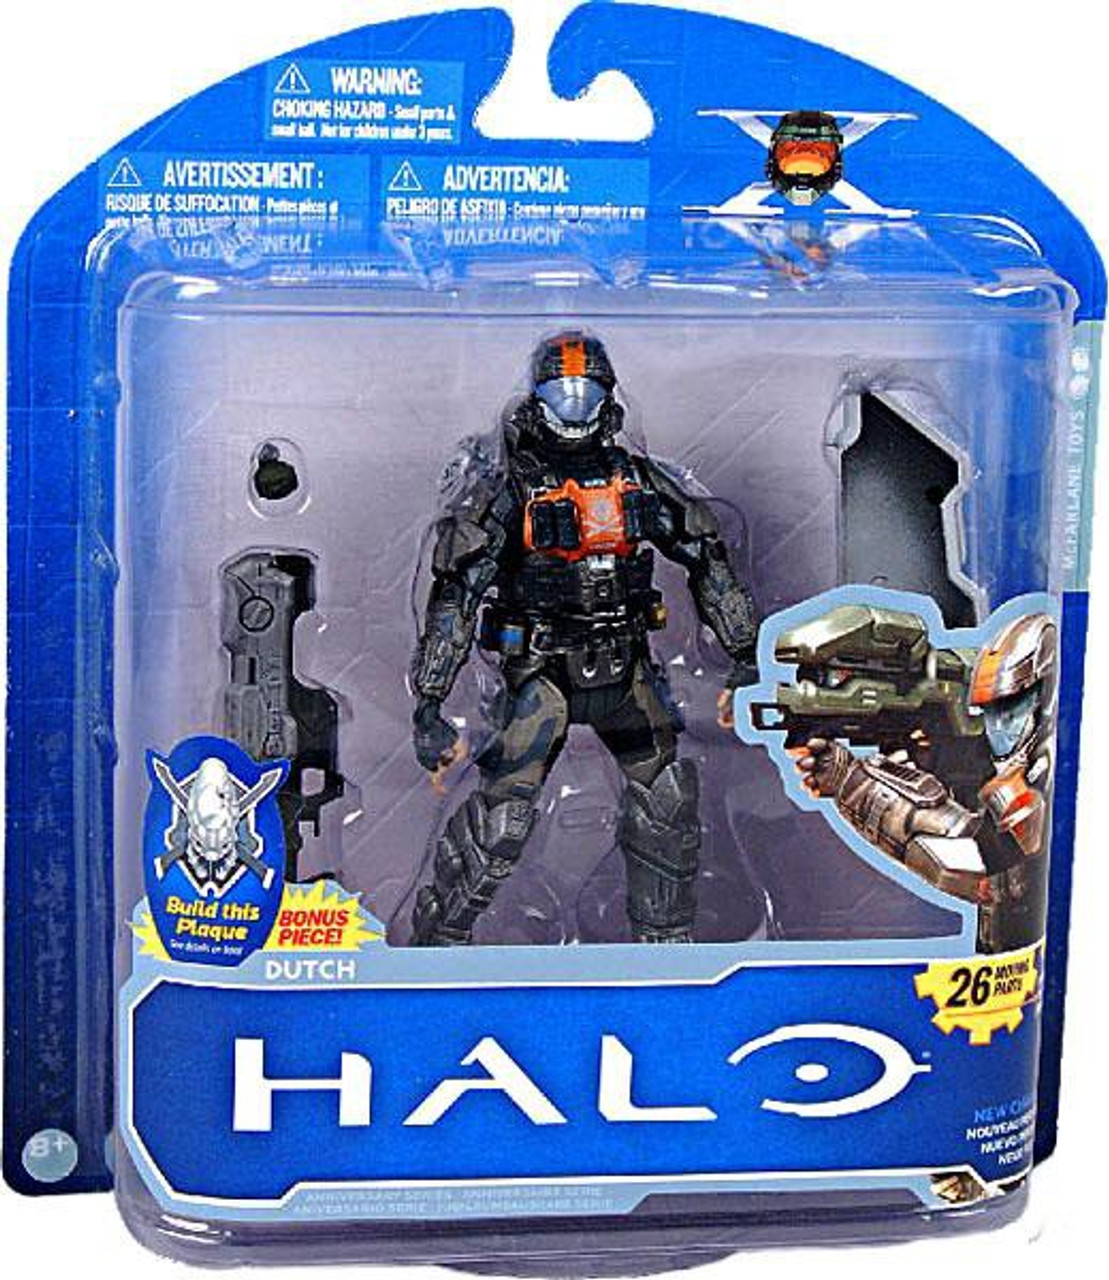 McFarlane Toys Halo 3 10th Anniversary Series 1 Dutch Action Figure